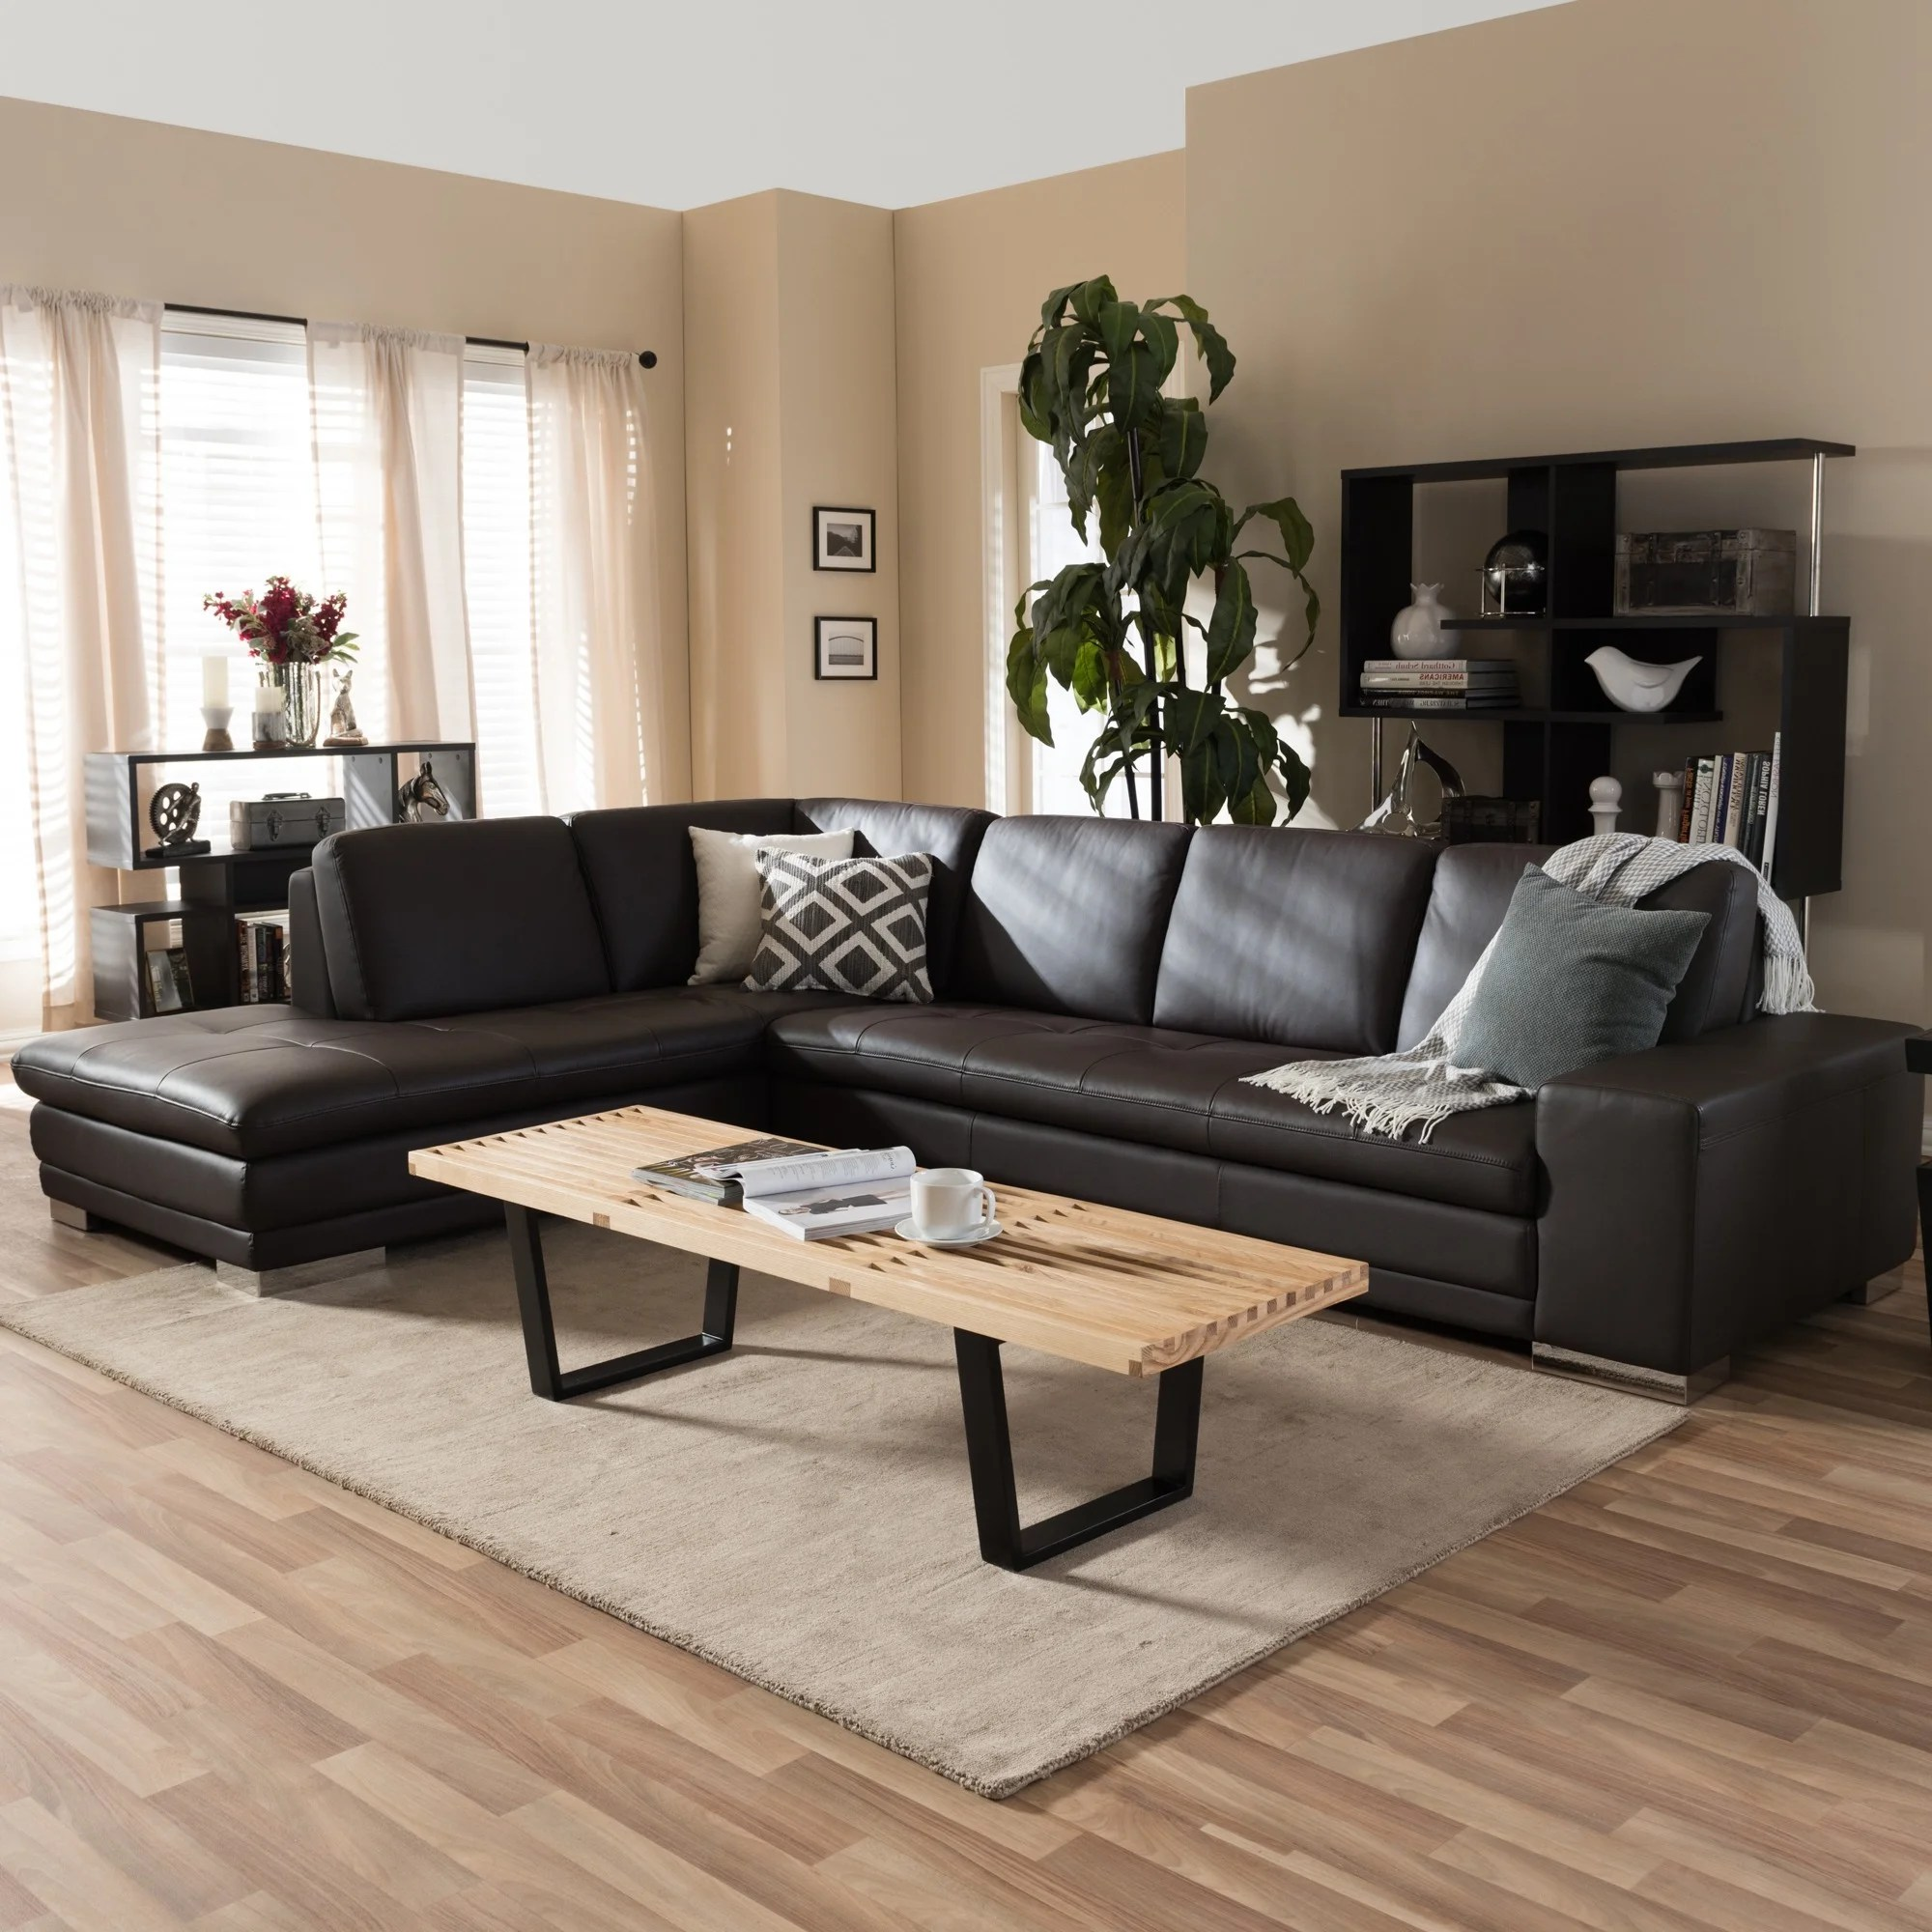 larry dark brown leather reverse sectional sofa chaise set